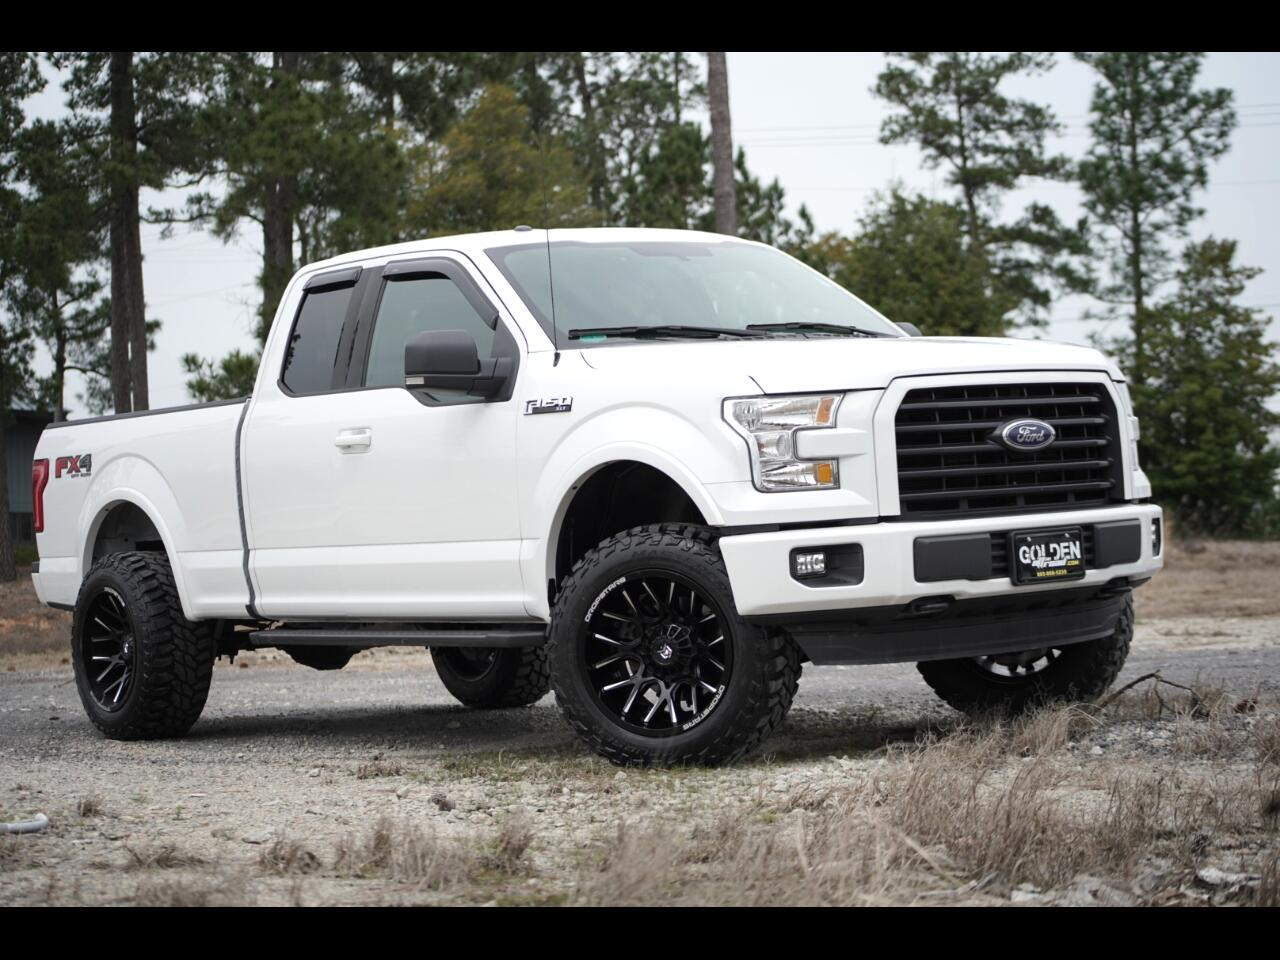 2015 Ford F-150 4wd Supercab Sport FX4 Lifted!